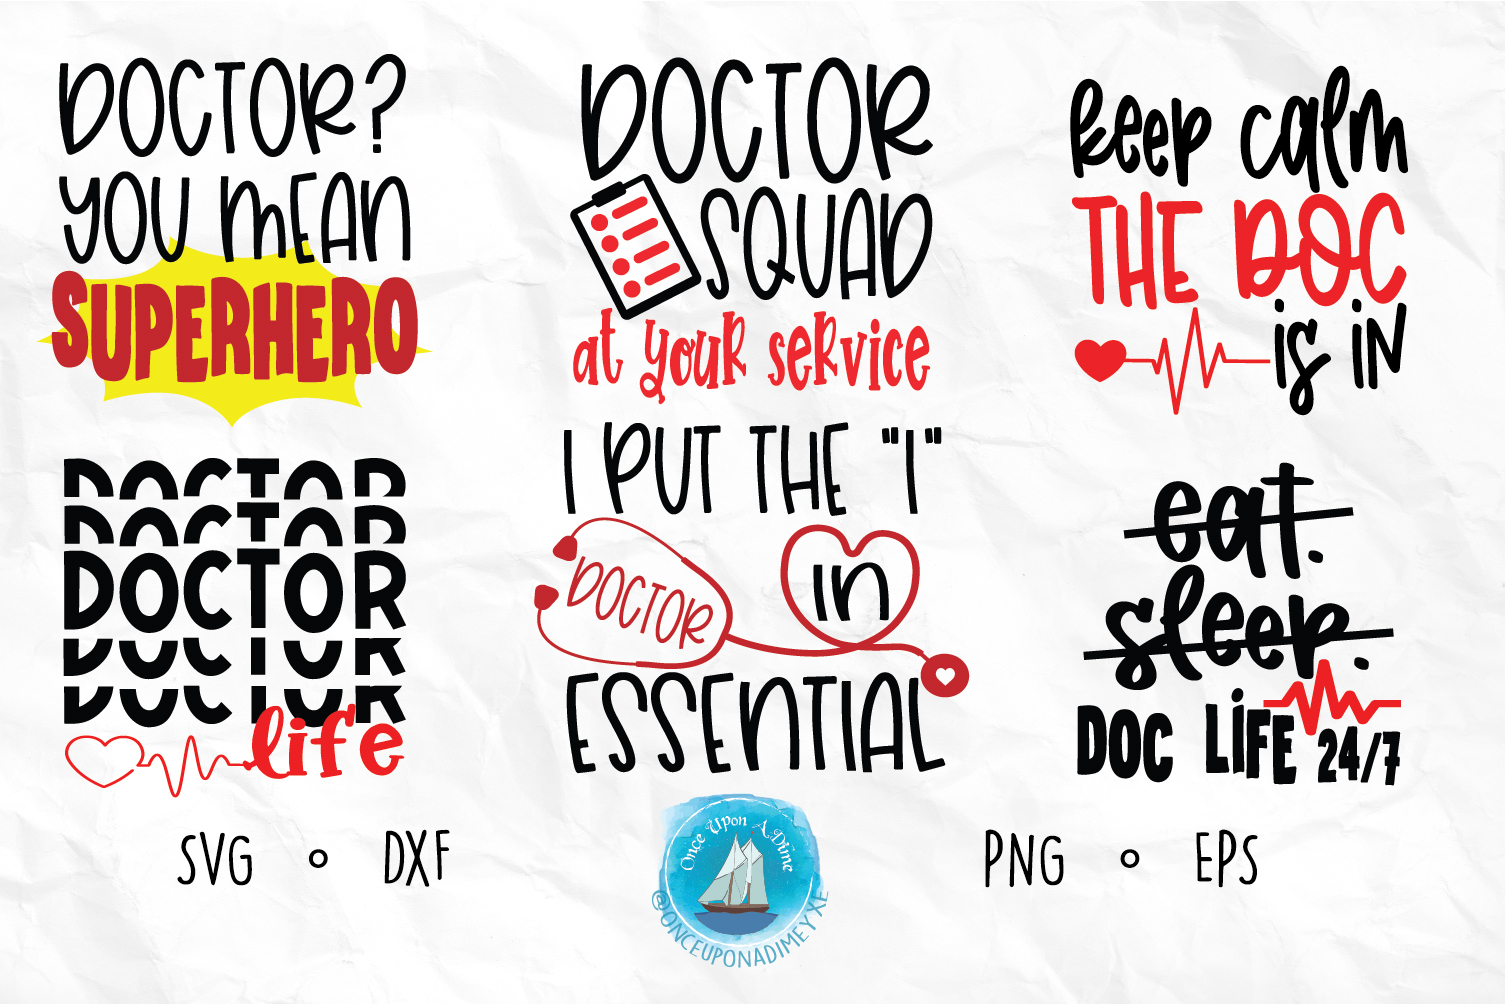 Download Free Doctor Bundle Graphic By Onceuponadimeyxe Creative Fabrica for Cricut Explore, Silhouette and other cutting machines.